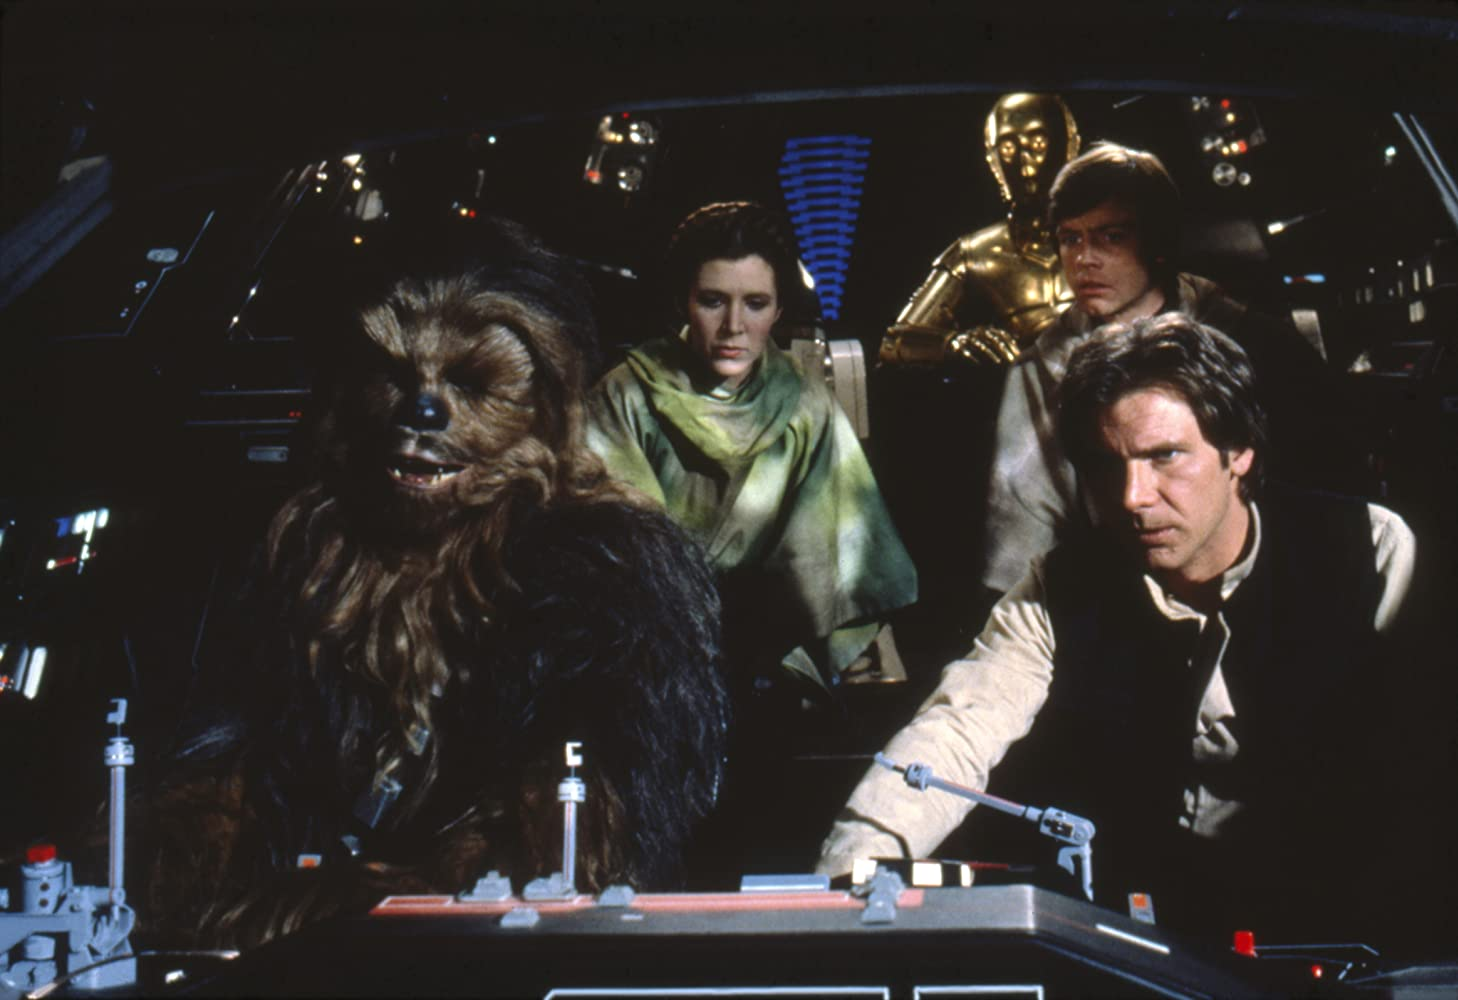 Harrison Ford, Anthony Daniels, Carrie Fisher, Mark Hamill, and Peter Mayhew in Star Wars: Episode VI - Return of the Jedi (1983)